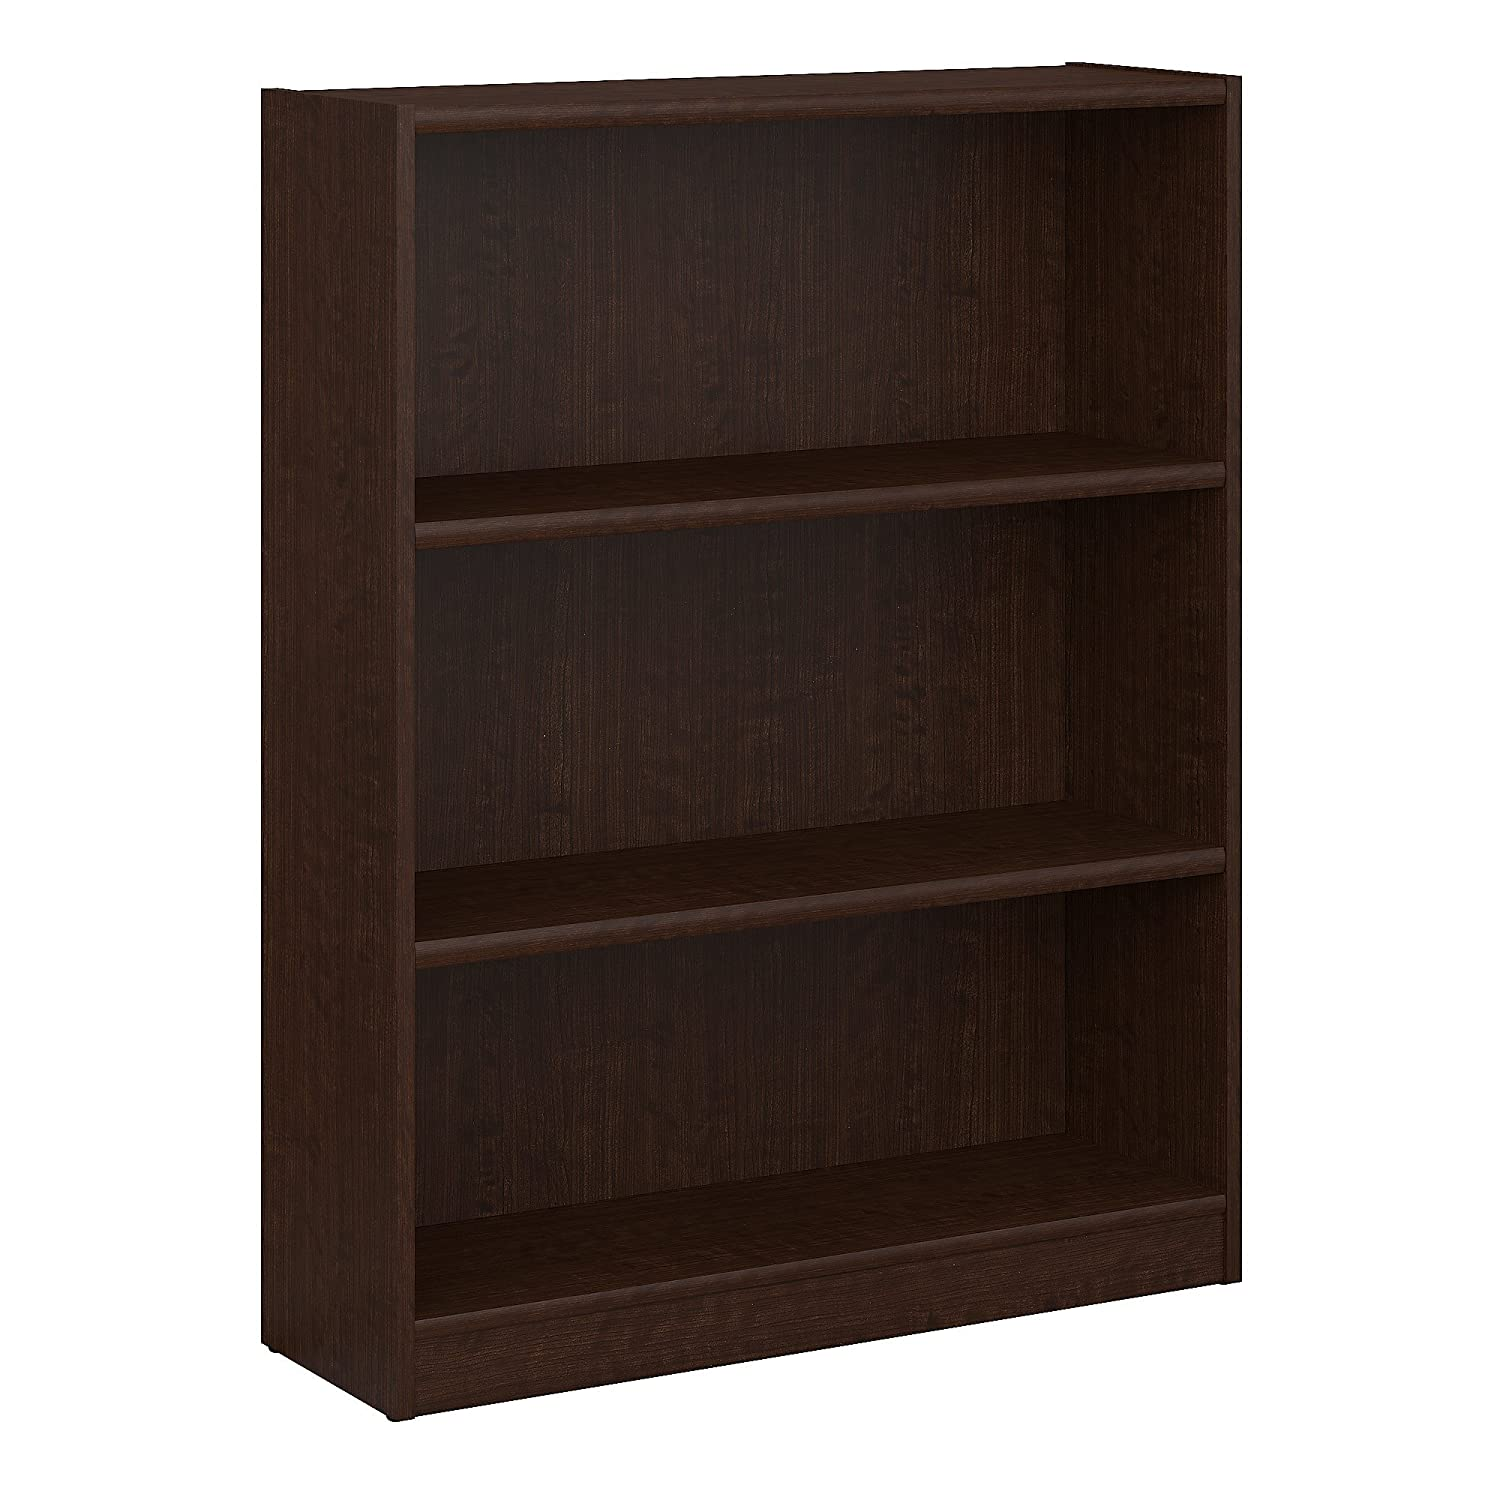 Bush Furniture Universal 3 Shelf Bookcase in Mocha Cherry WL12483-03